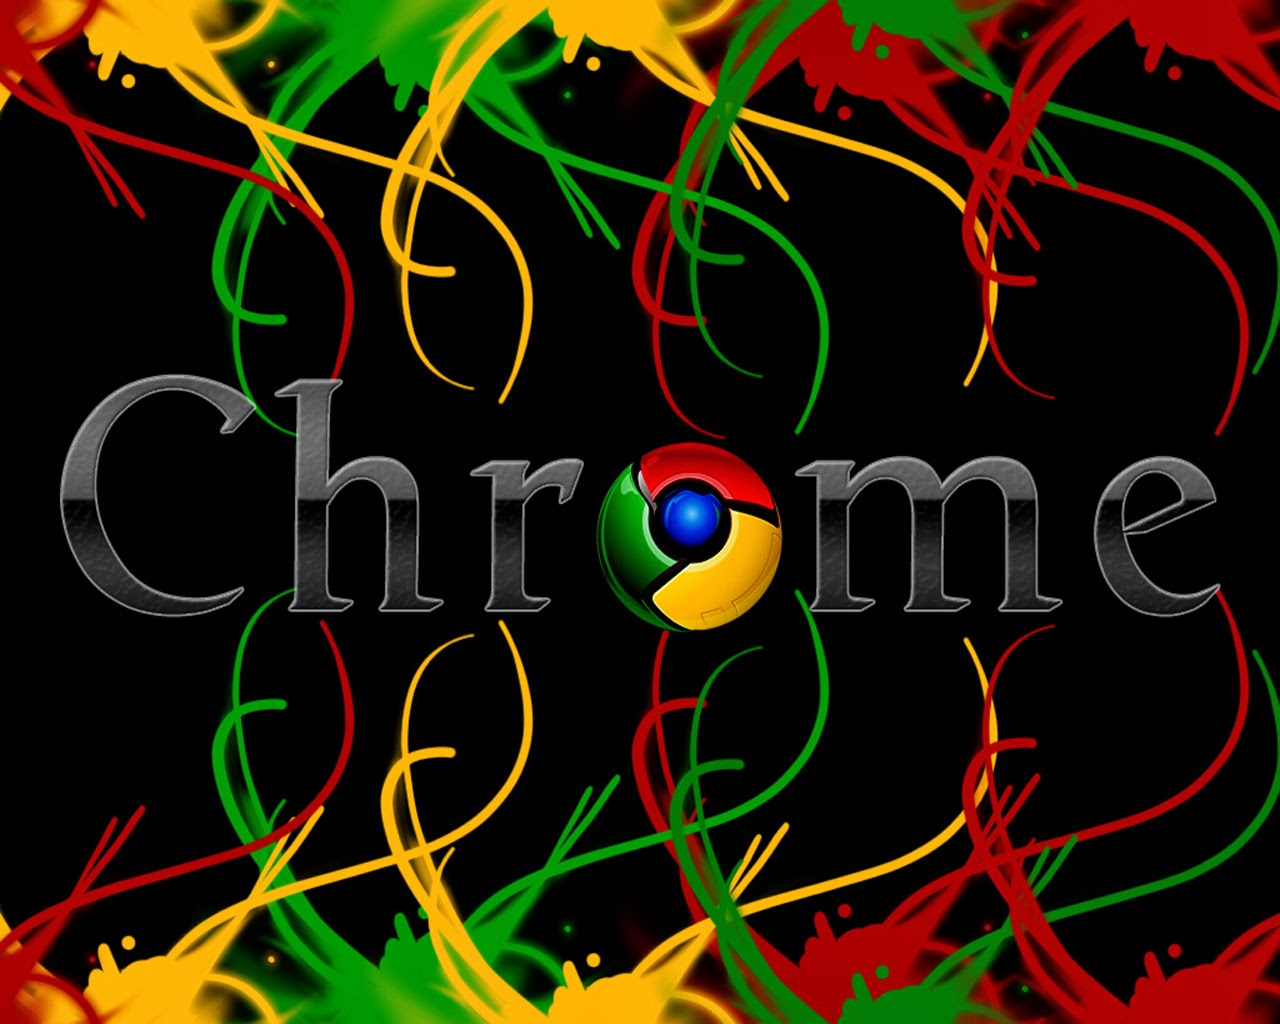 Hd Wallpapers Blog: Google Chrome Wallpapers